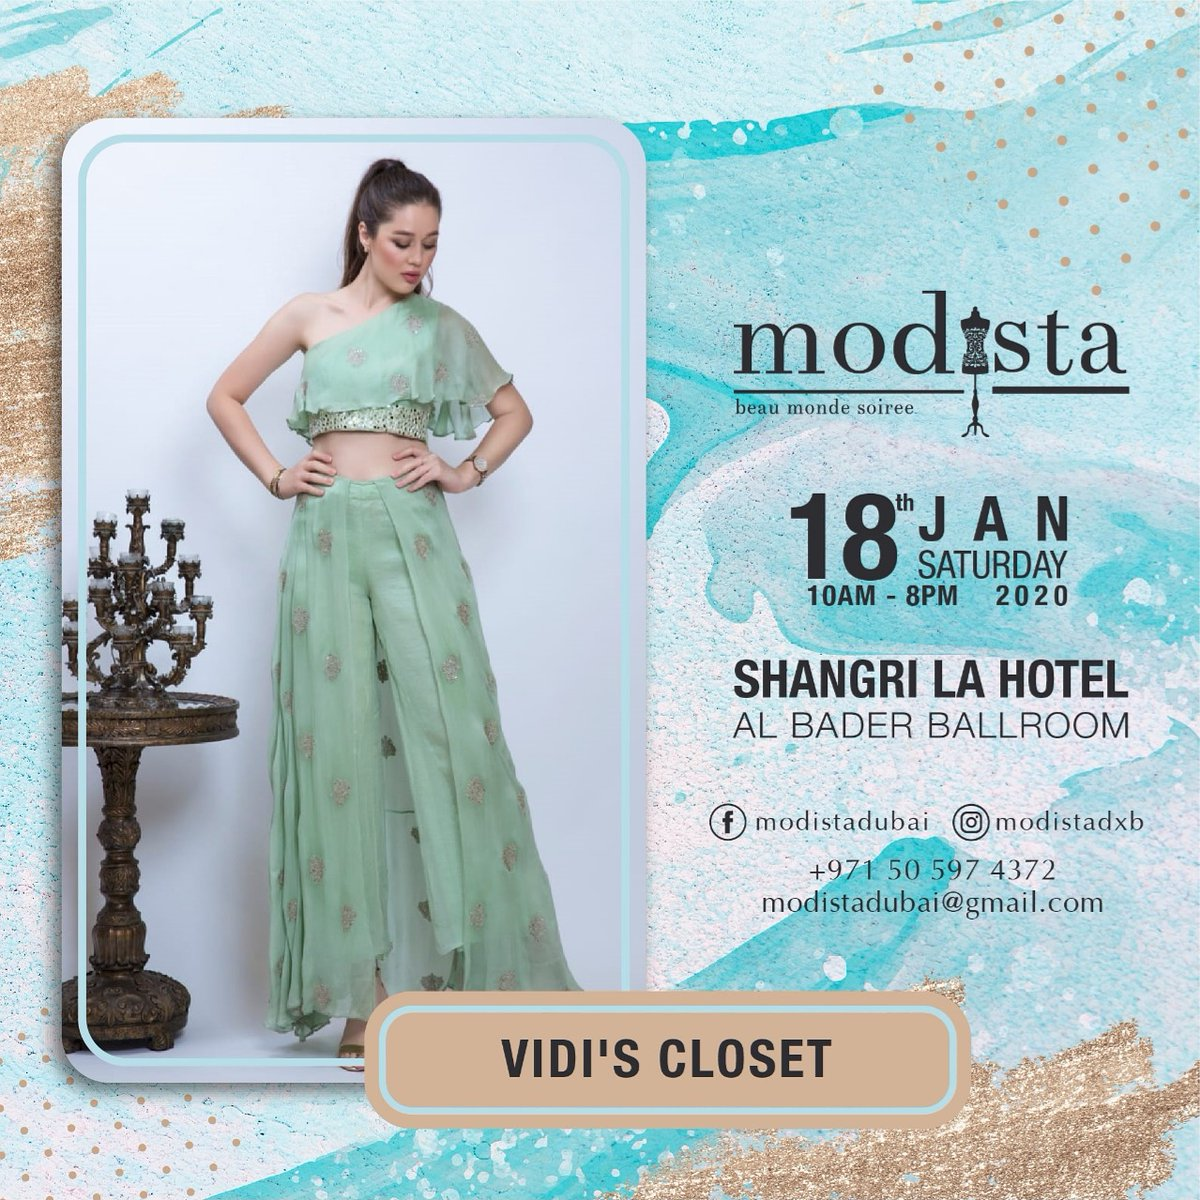 Party like a fashionista  with @Vidi's kloset and their gorgeous ensembles!  Shop their exclusive collection at @modistadxb on Sat 18th January, Shangrila Dubai from 10am - 8pm. #Modista #Modistadxb #luxuryfashion #luxurypret #womensfashion #shoppingevent #exhibitionpic.twitter.com/MkZV5OnTQk